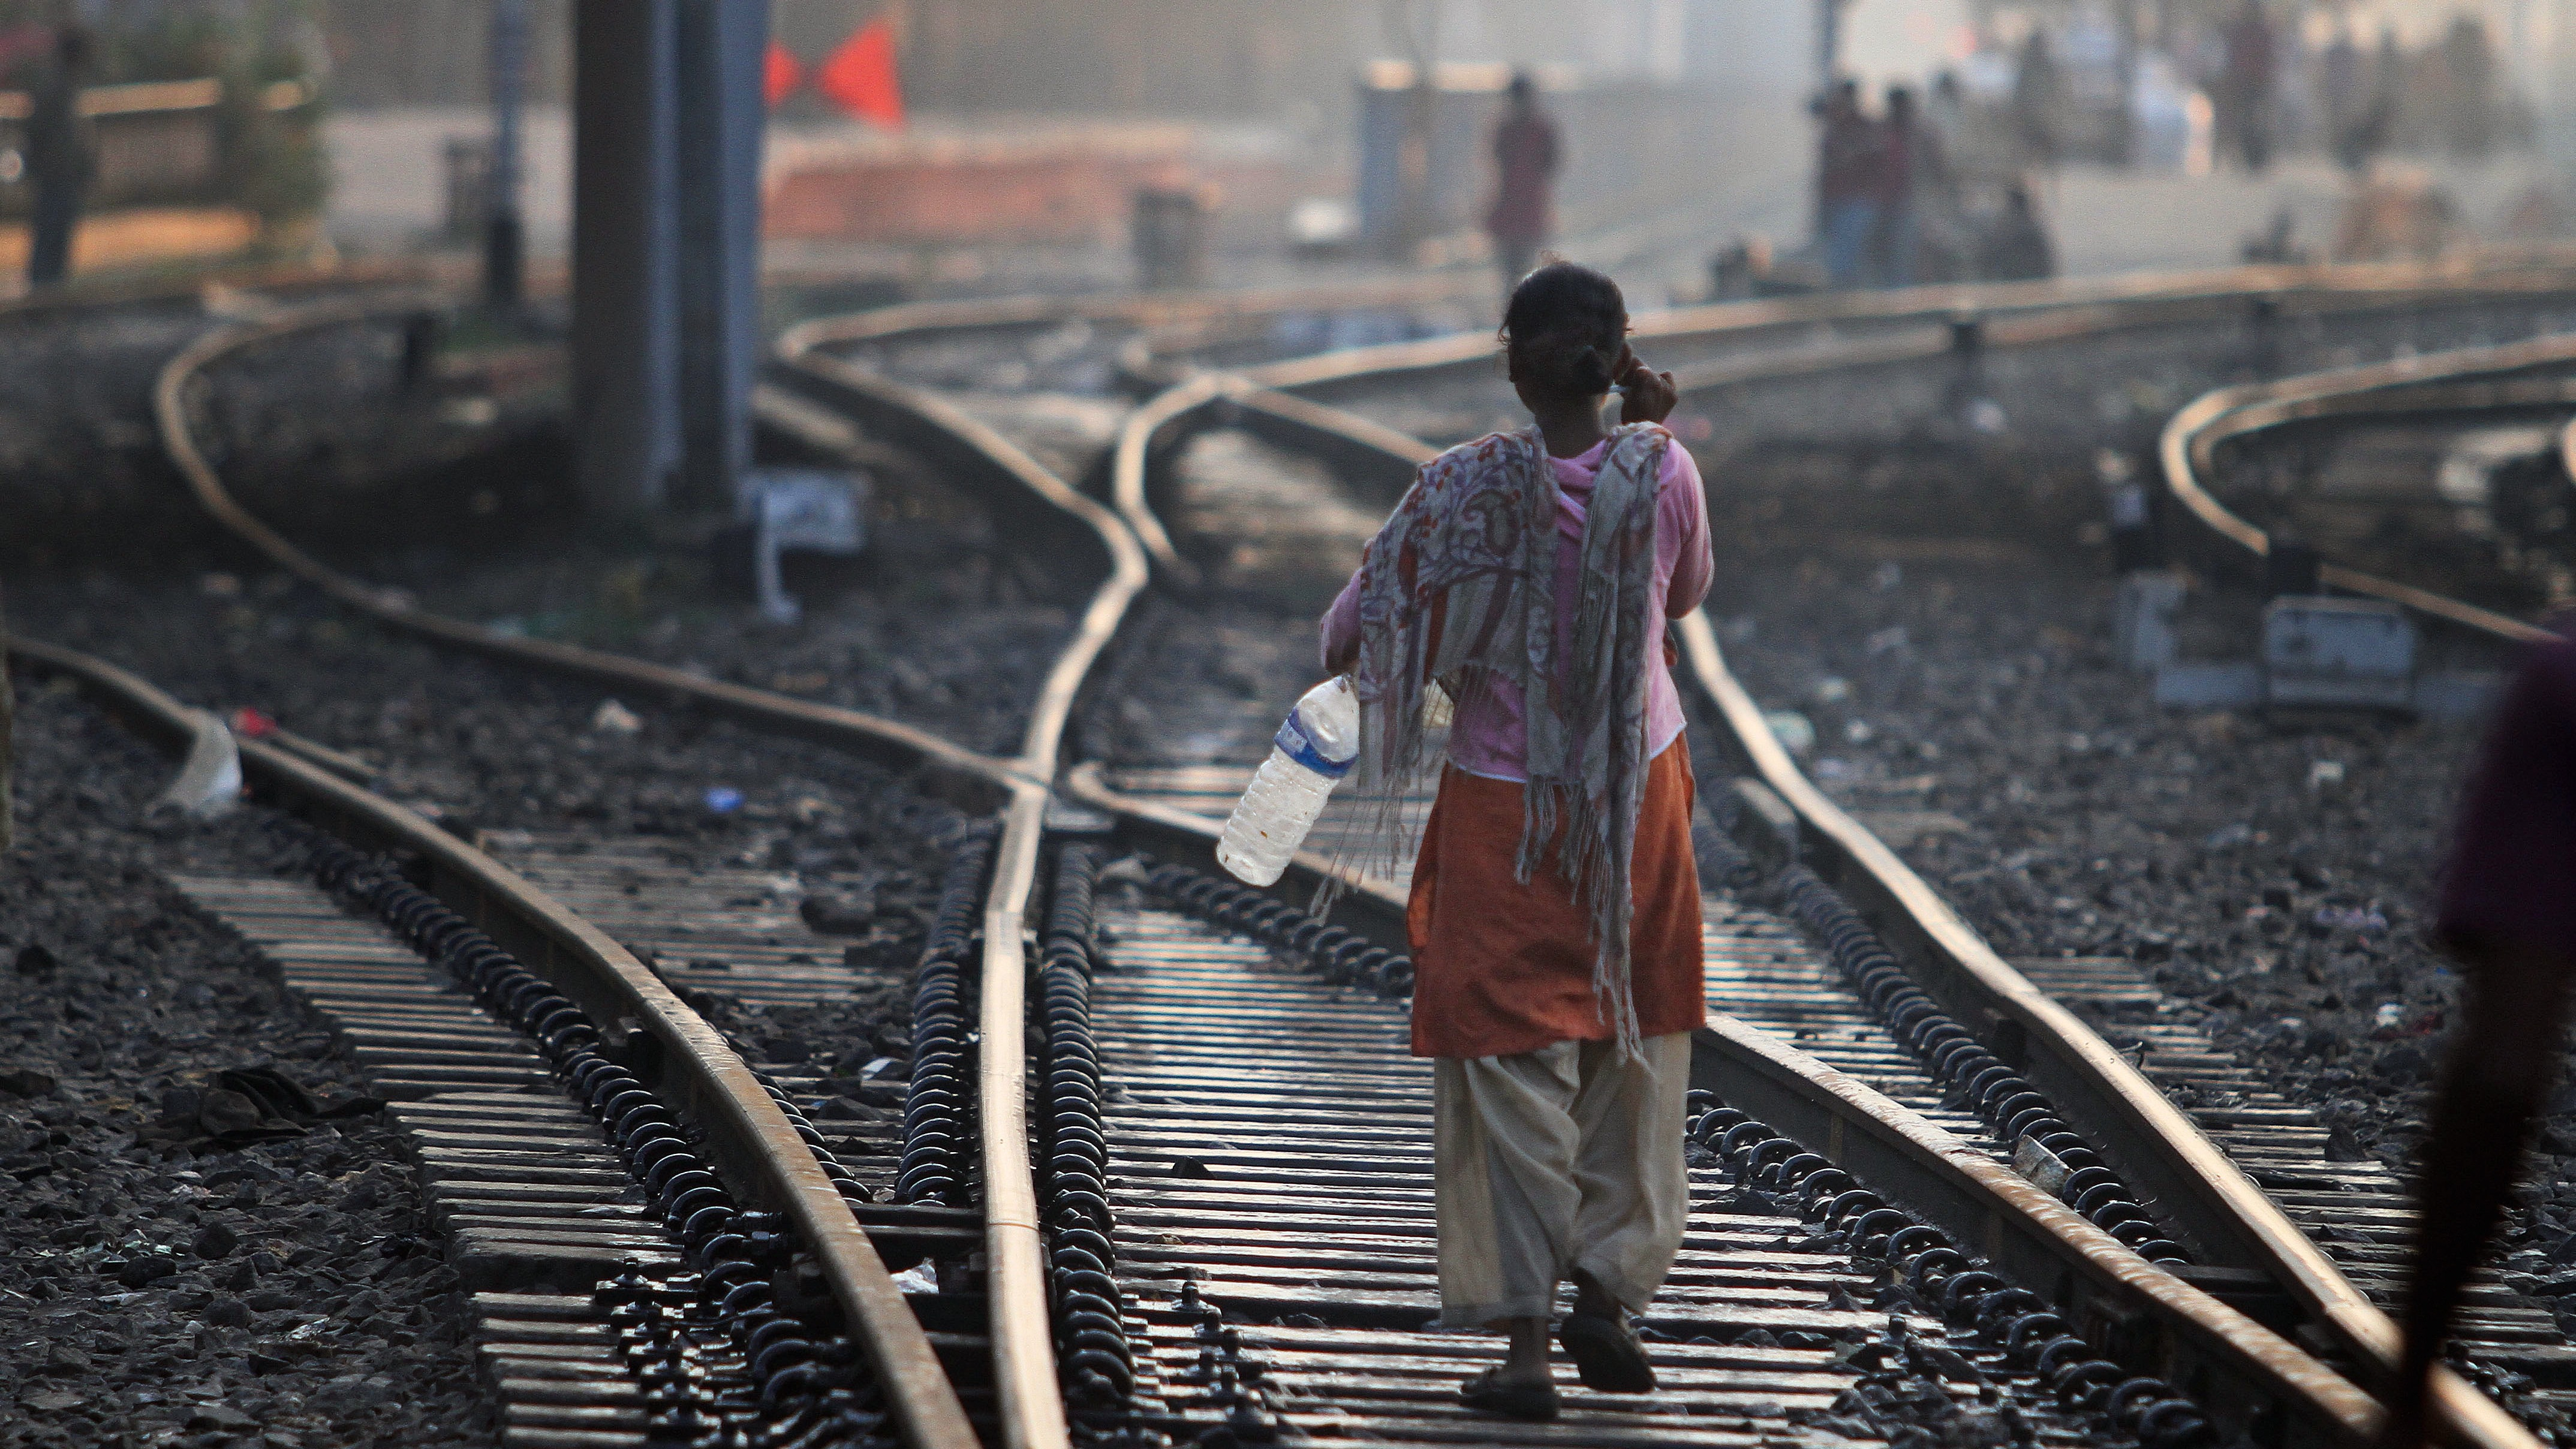 An Indian woman walks after defecating on a railway track, on World Toilet Day in Gauhati, India, Wednesday, Nov. 19 2014. India is considered to have the world's worst sanitation record despite spending some $3 billion since 1986 on sanitation programs, according to government figures. Building toilets in rural India, where hundreds of millions are still defecating outdoors, will not be enough to improve public health, according to a study published last month. (AP Photo/Anupam Nath)